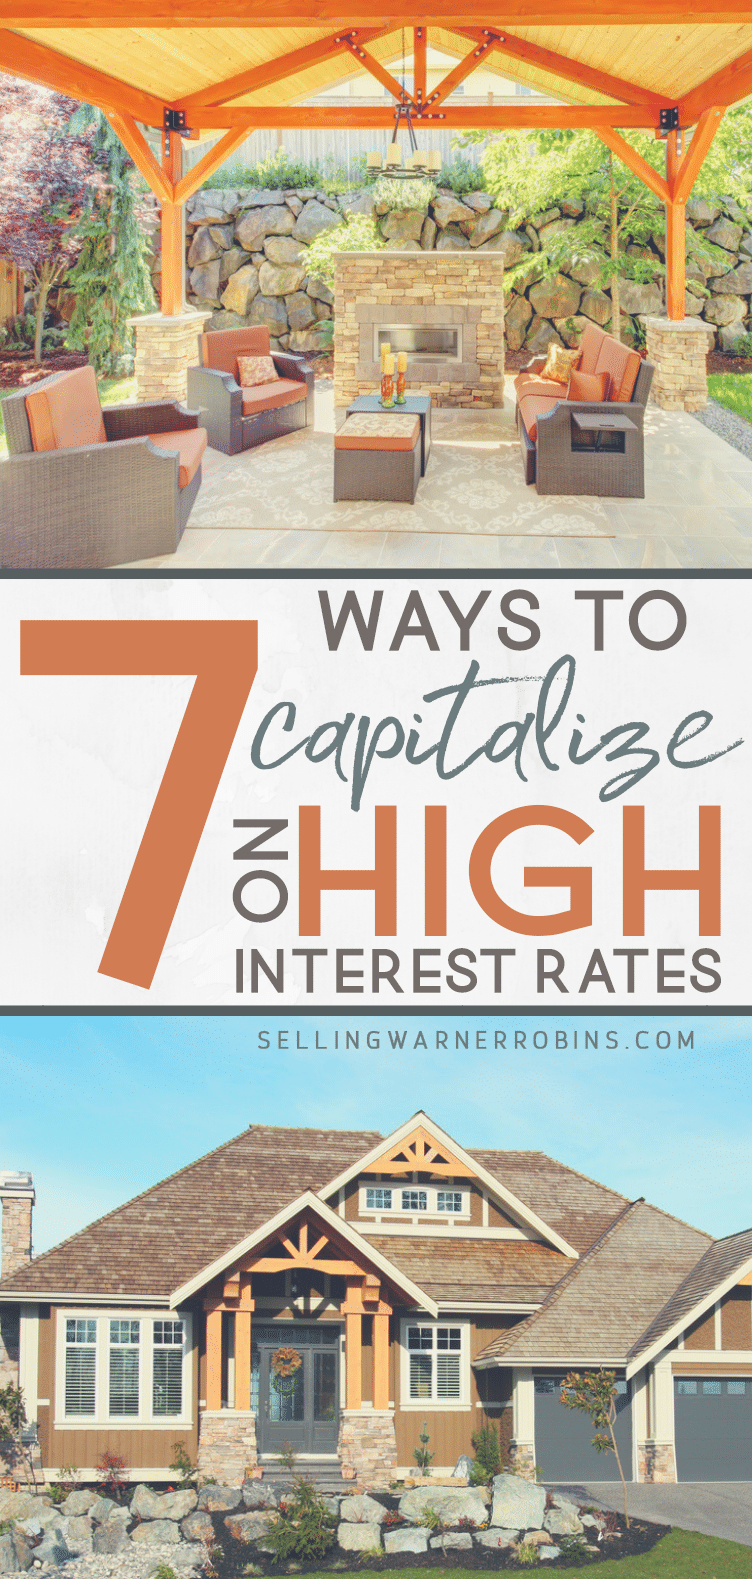 7 Ways to Capitalize on High Interest Rates